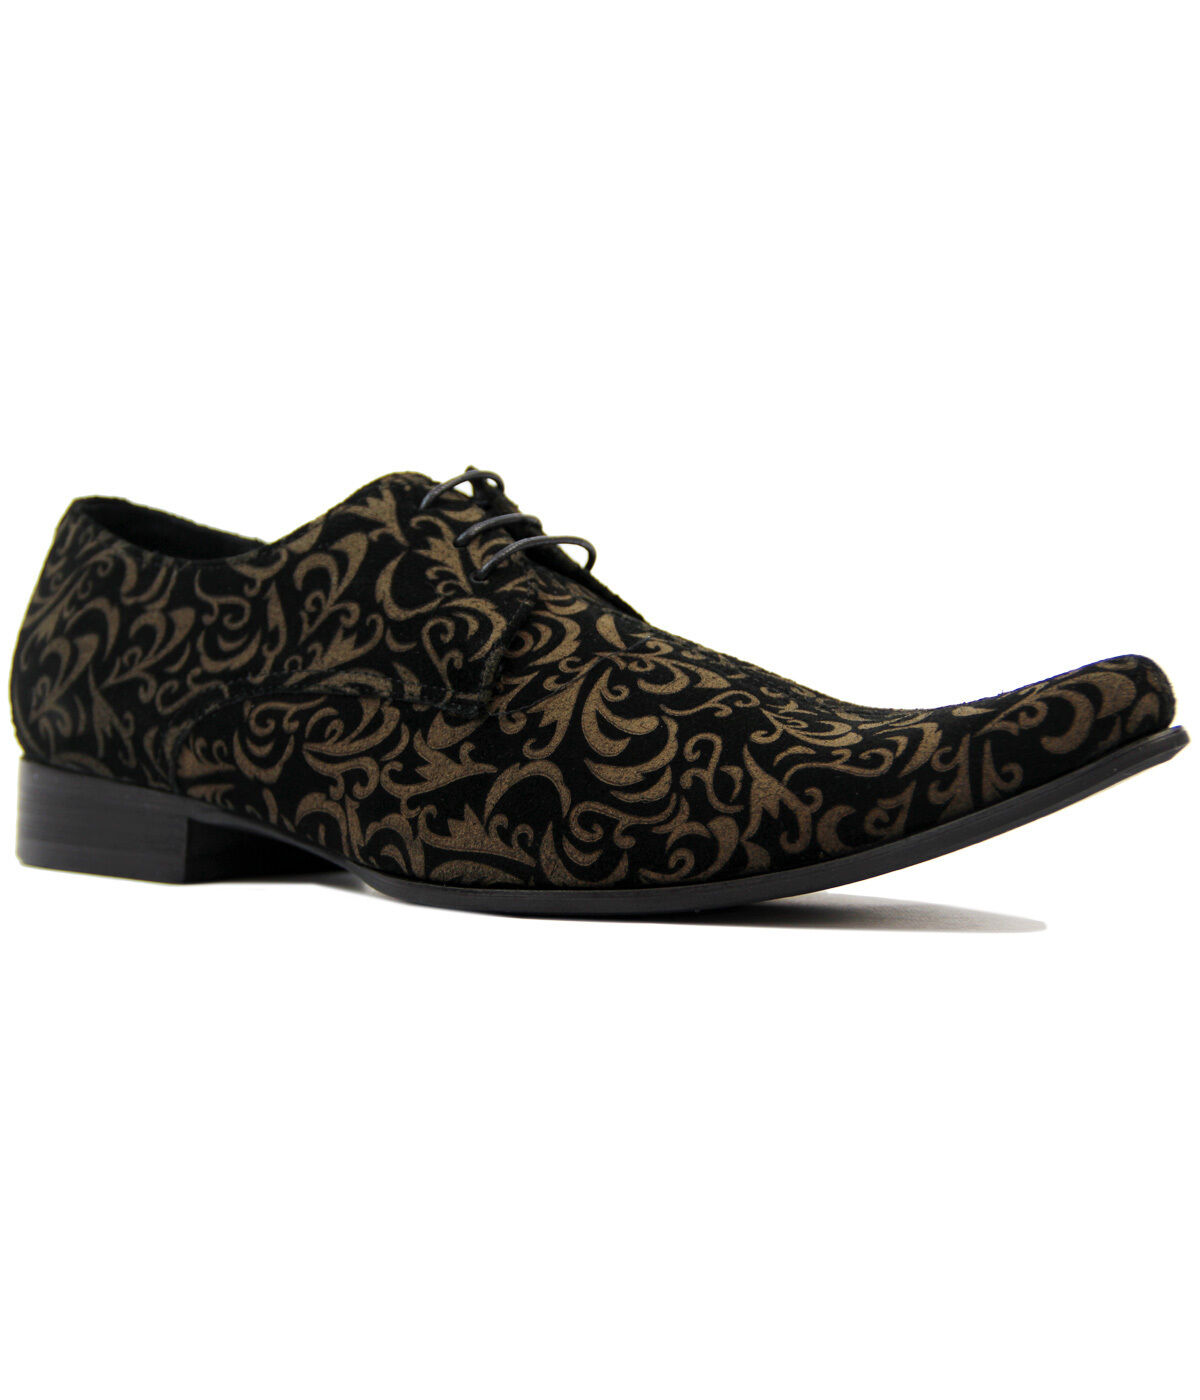 NEW MADCAP MOD RETRO MOD SIXTIES PAISLEY SUEDE SHOES Winklepickers 60s JAG Black